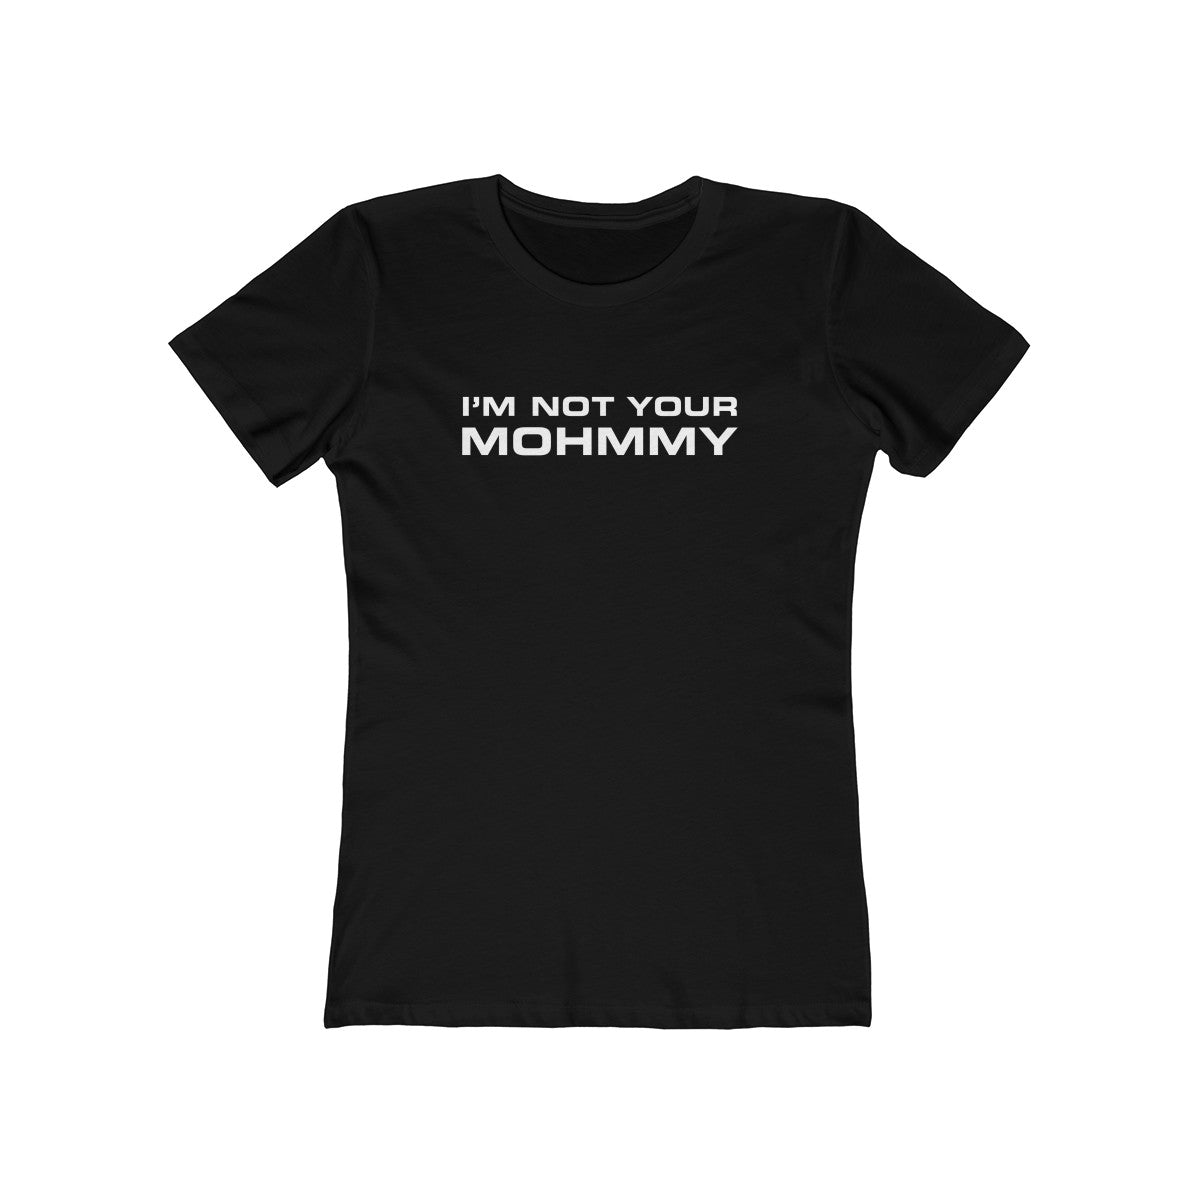 MOHMMY . I'm Not Your Mohmmy . White Print . Women's The Boyfriend Tee